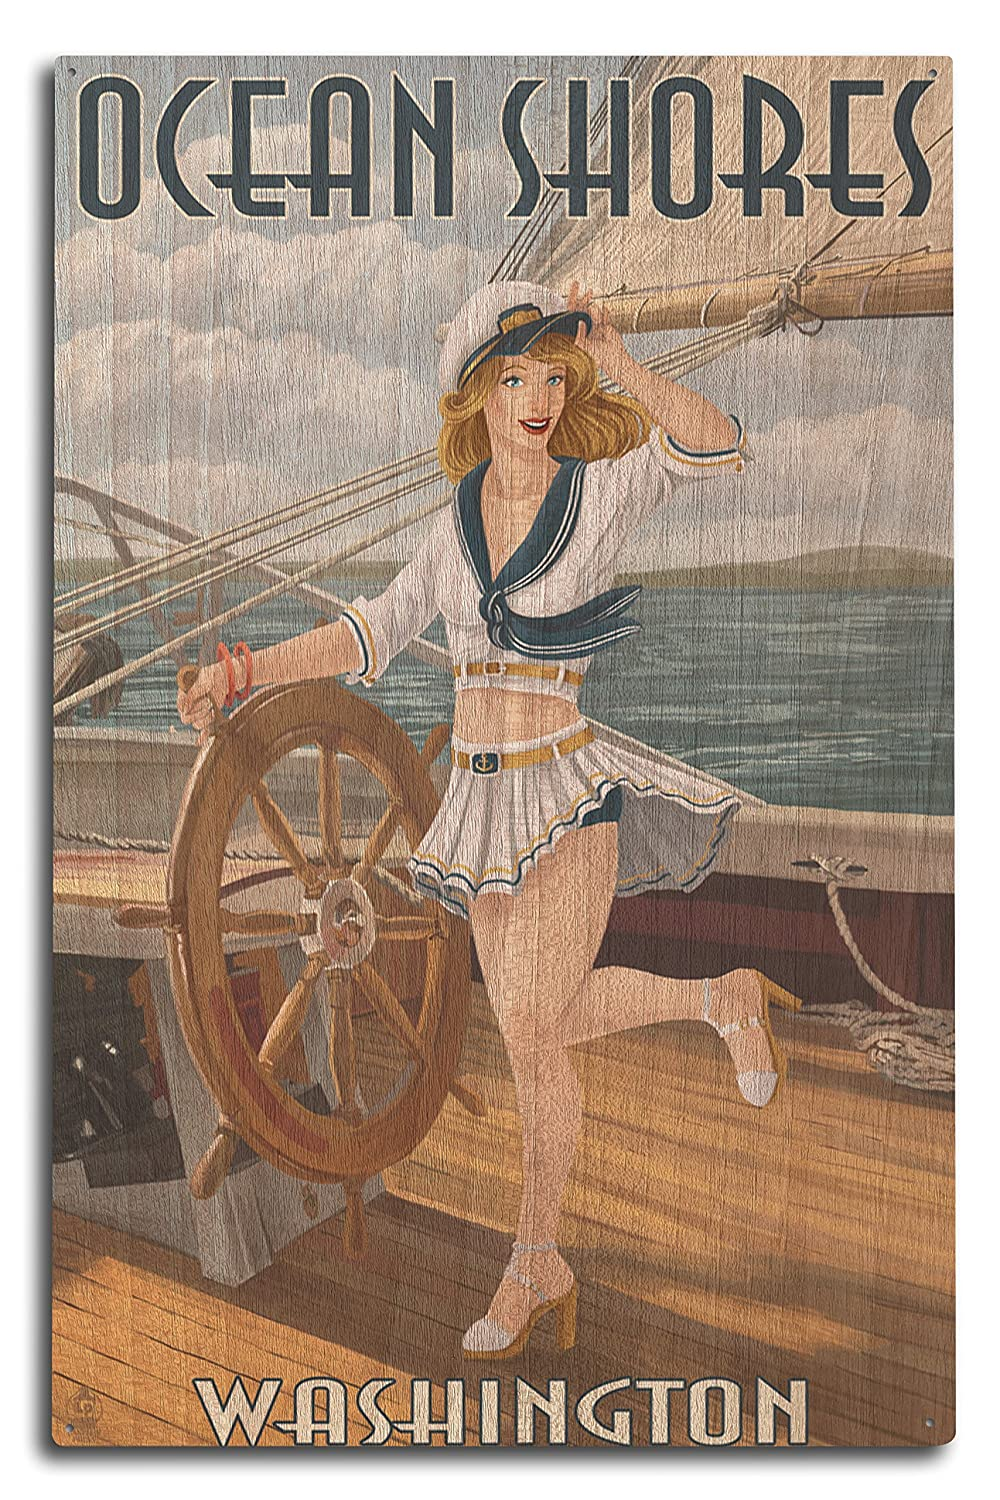 Ocean Shores、ワシントン – Pinup Girl Sailing 10 x 15 Wood Sign LANT-46263-10x15W B07365X2D3  10 x 15 Wood Sign